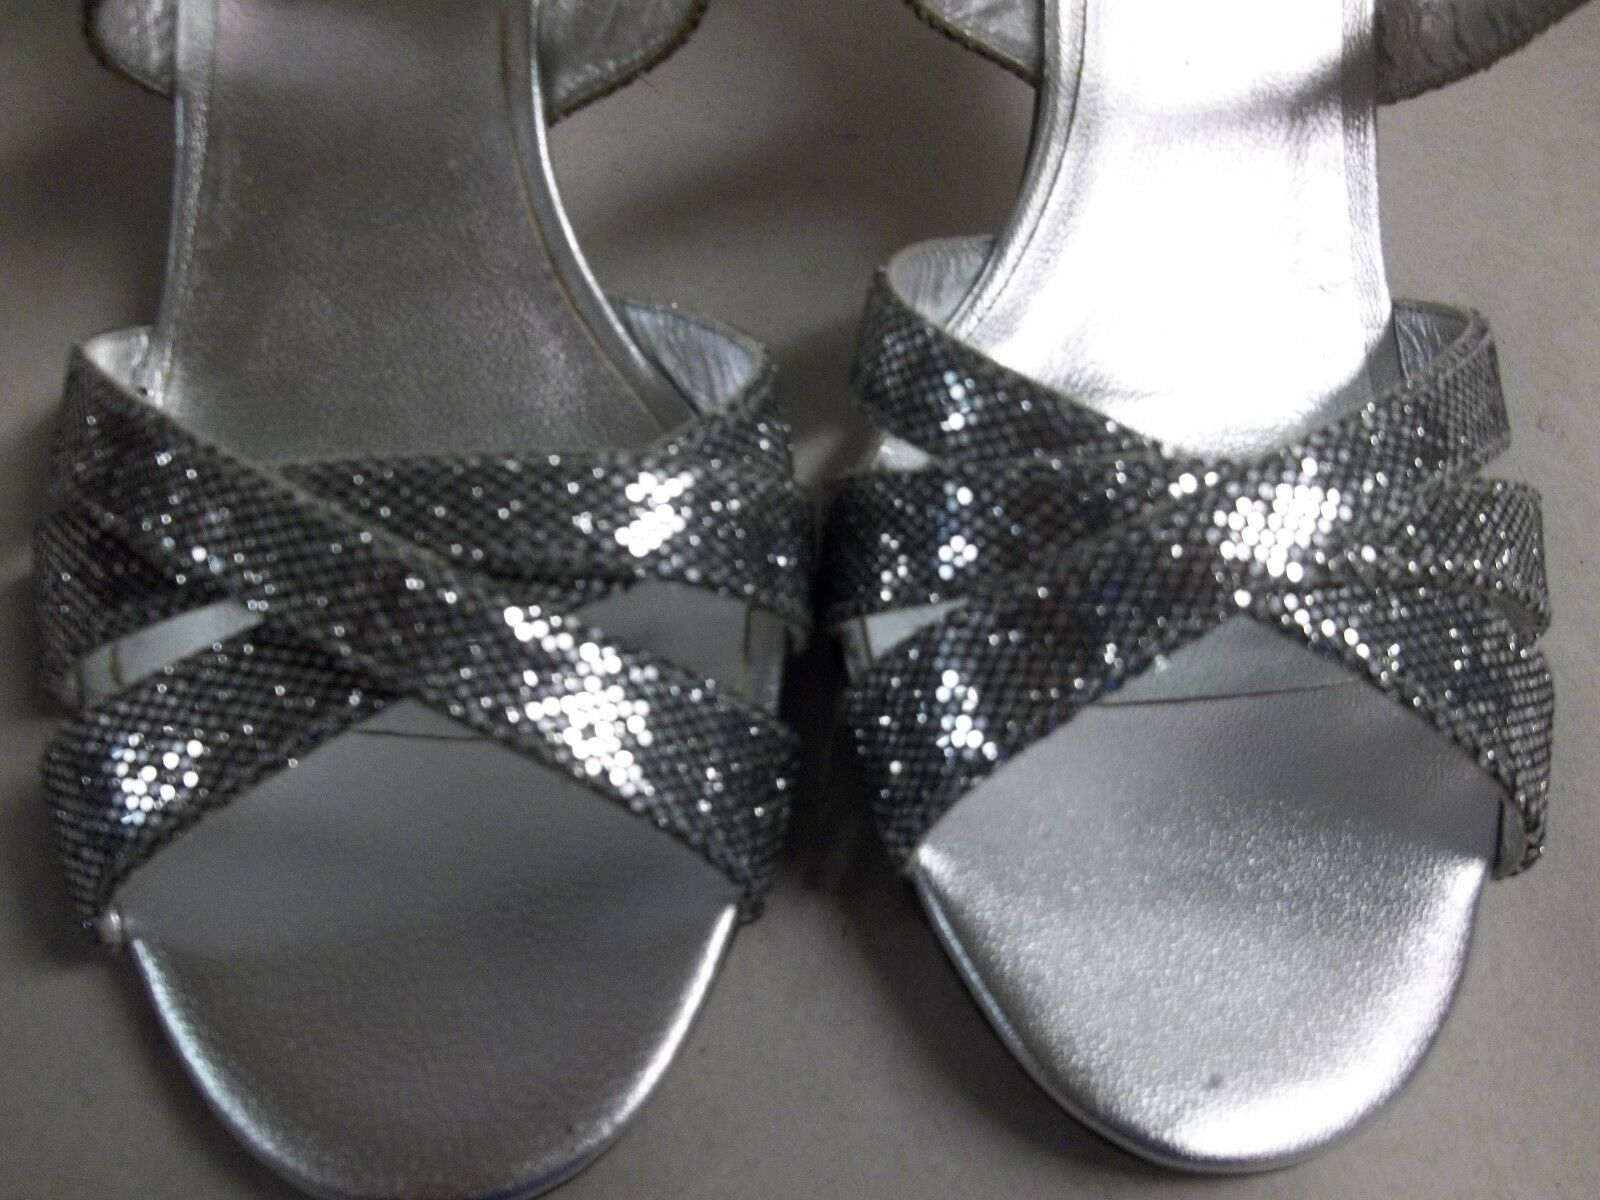 Amalfi by Rangoni Taille Taille Taille 6.5 M Colle argent Glitter Sandals New femmes chaussures caeed6